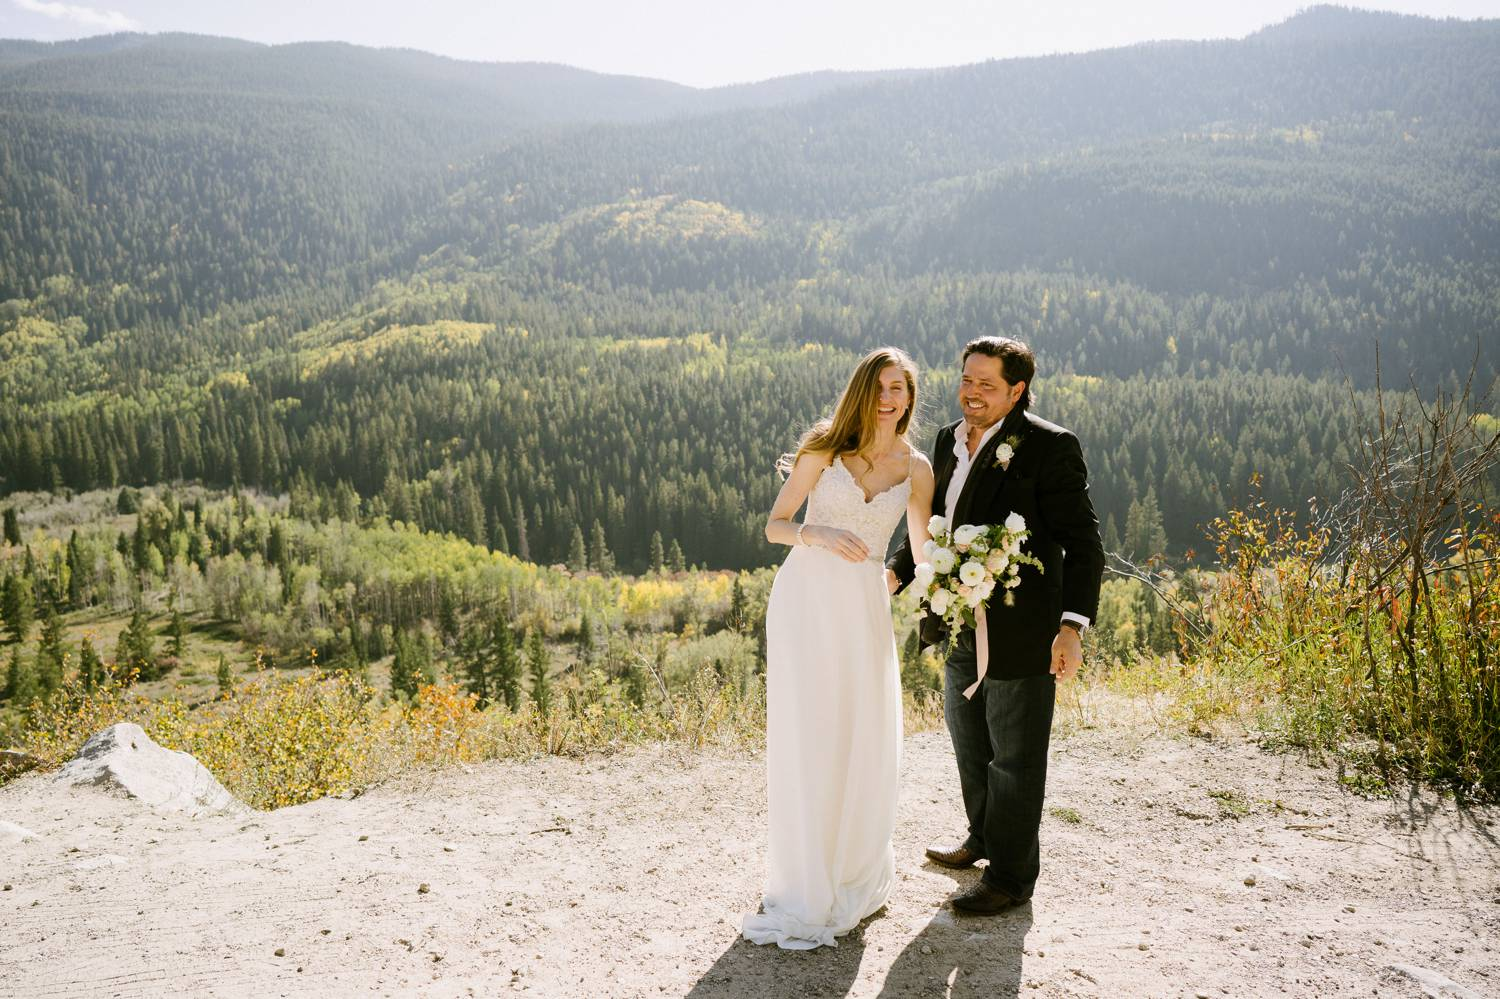 Customer Loyalty: By Nick Sparks, a bride and groom stand close together laughing as the Denver hills rise behind them.